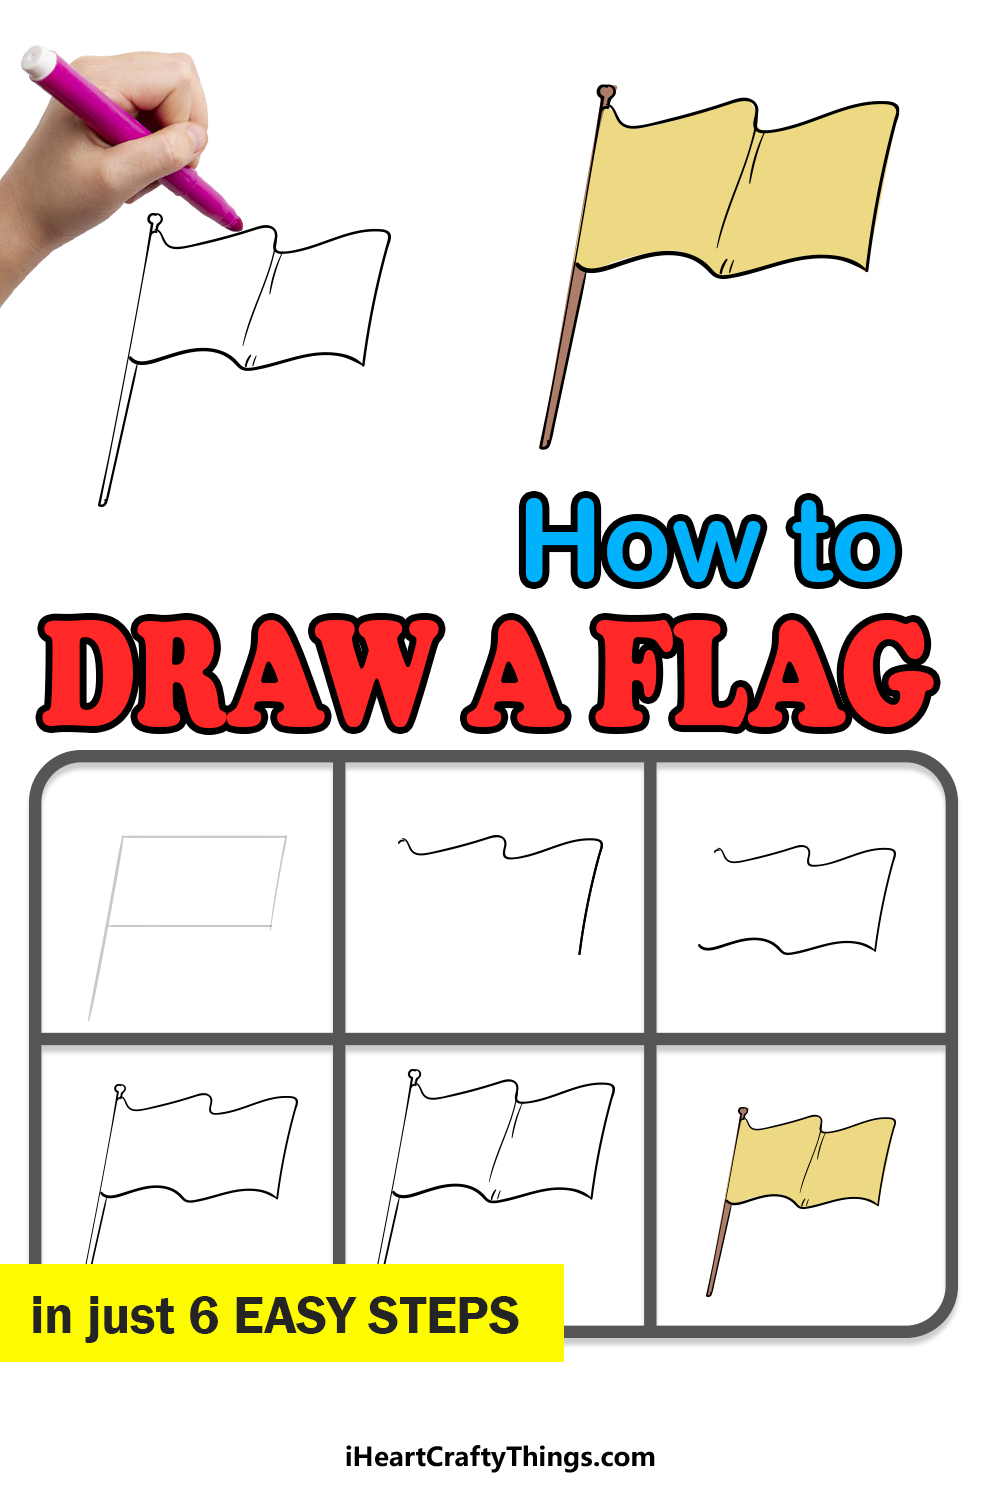 how to draw a flag in 6 easy steps